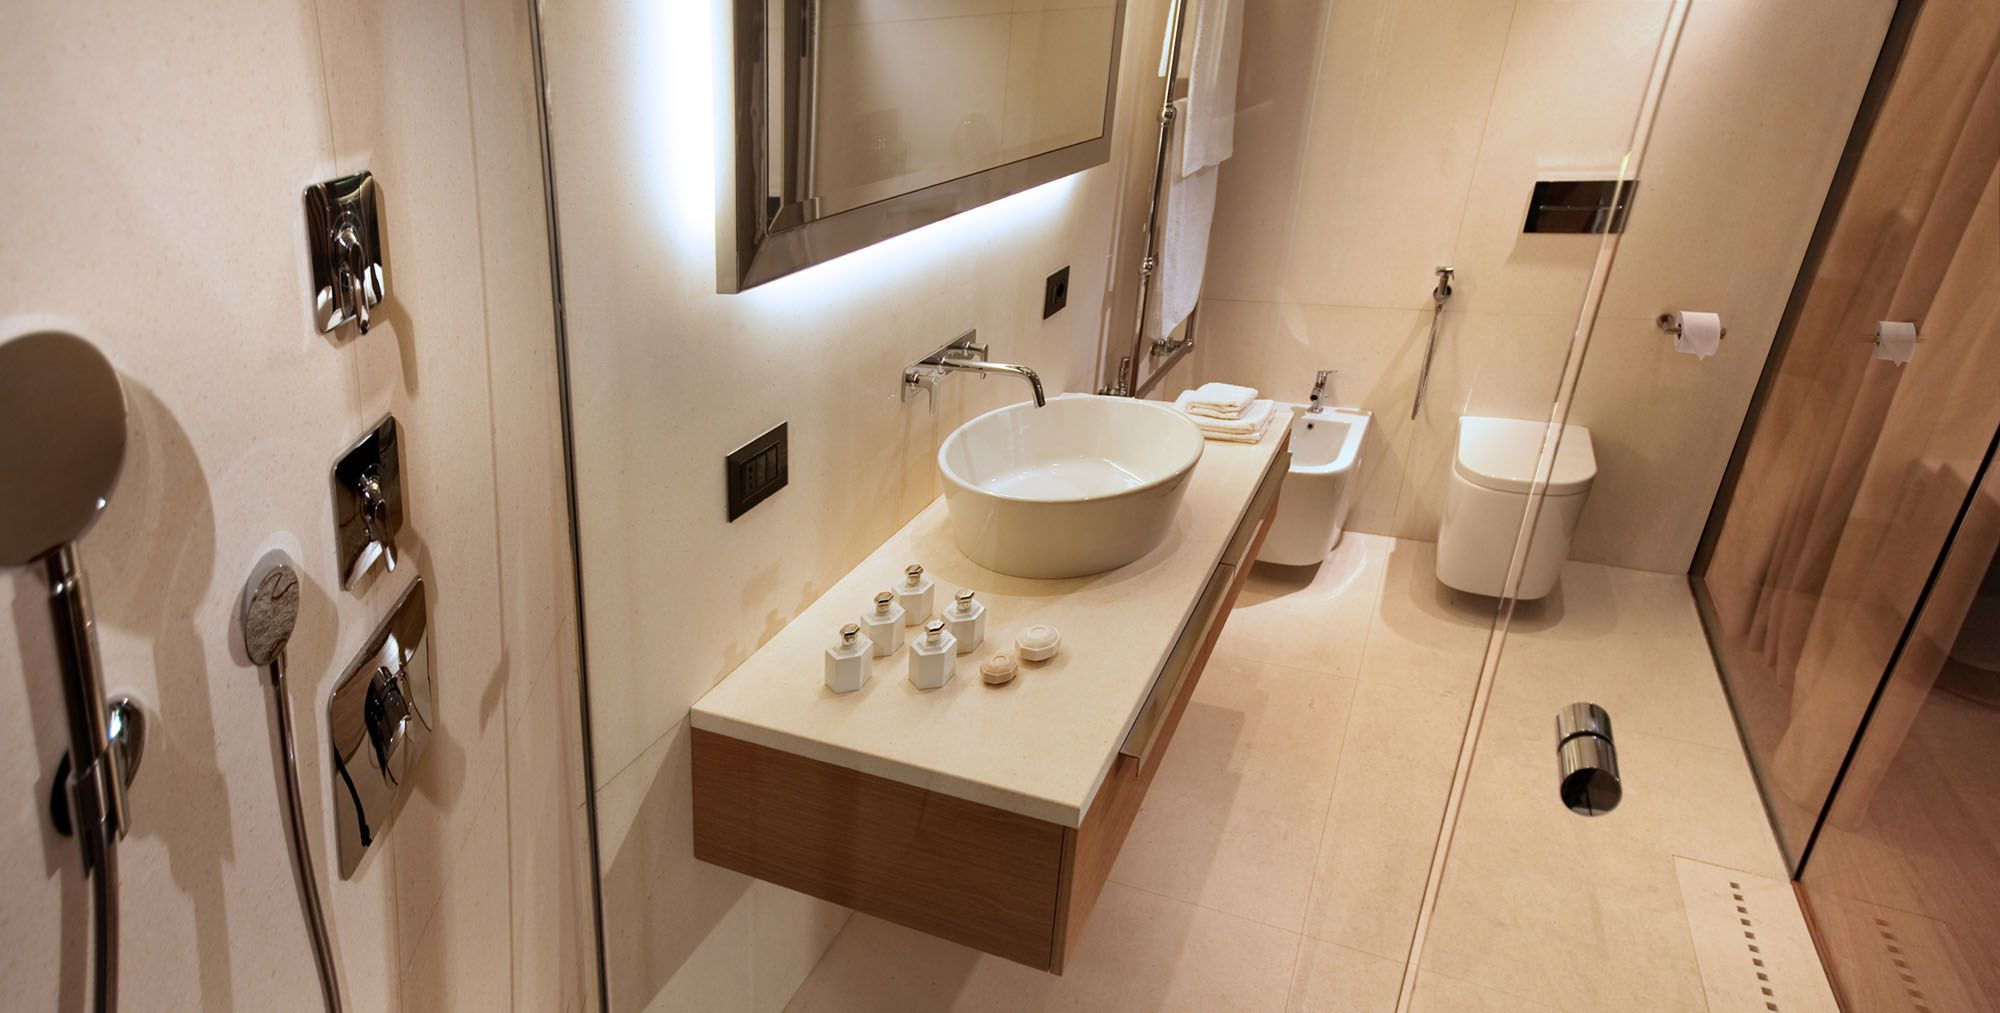 5 star bathroom designs - Image Result For Hotel Bathroom Designs